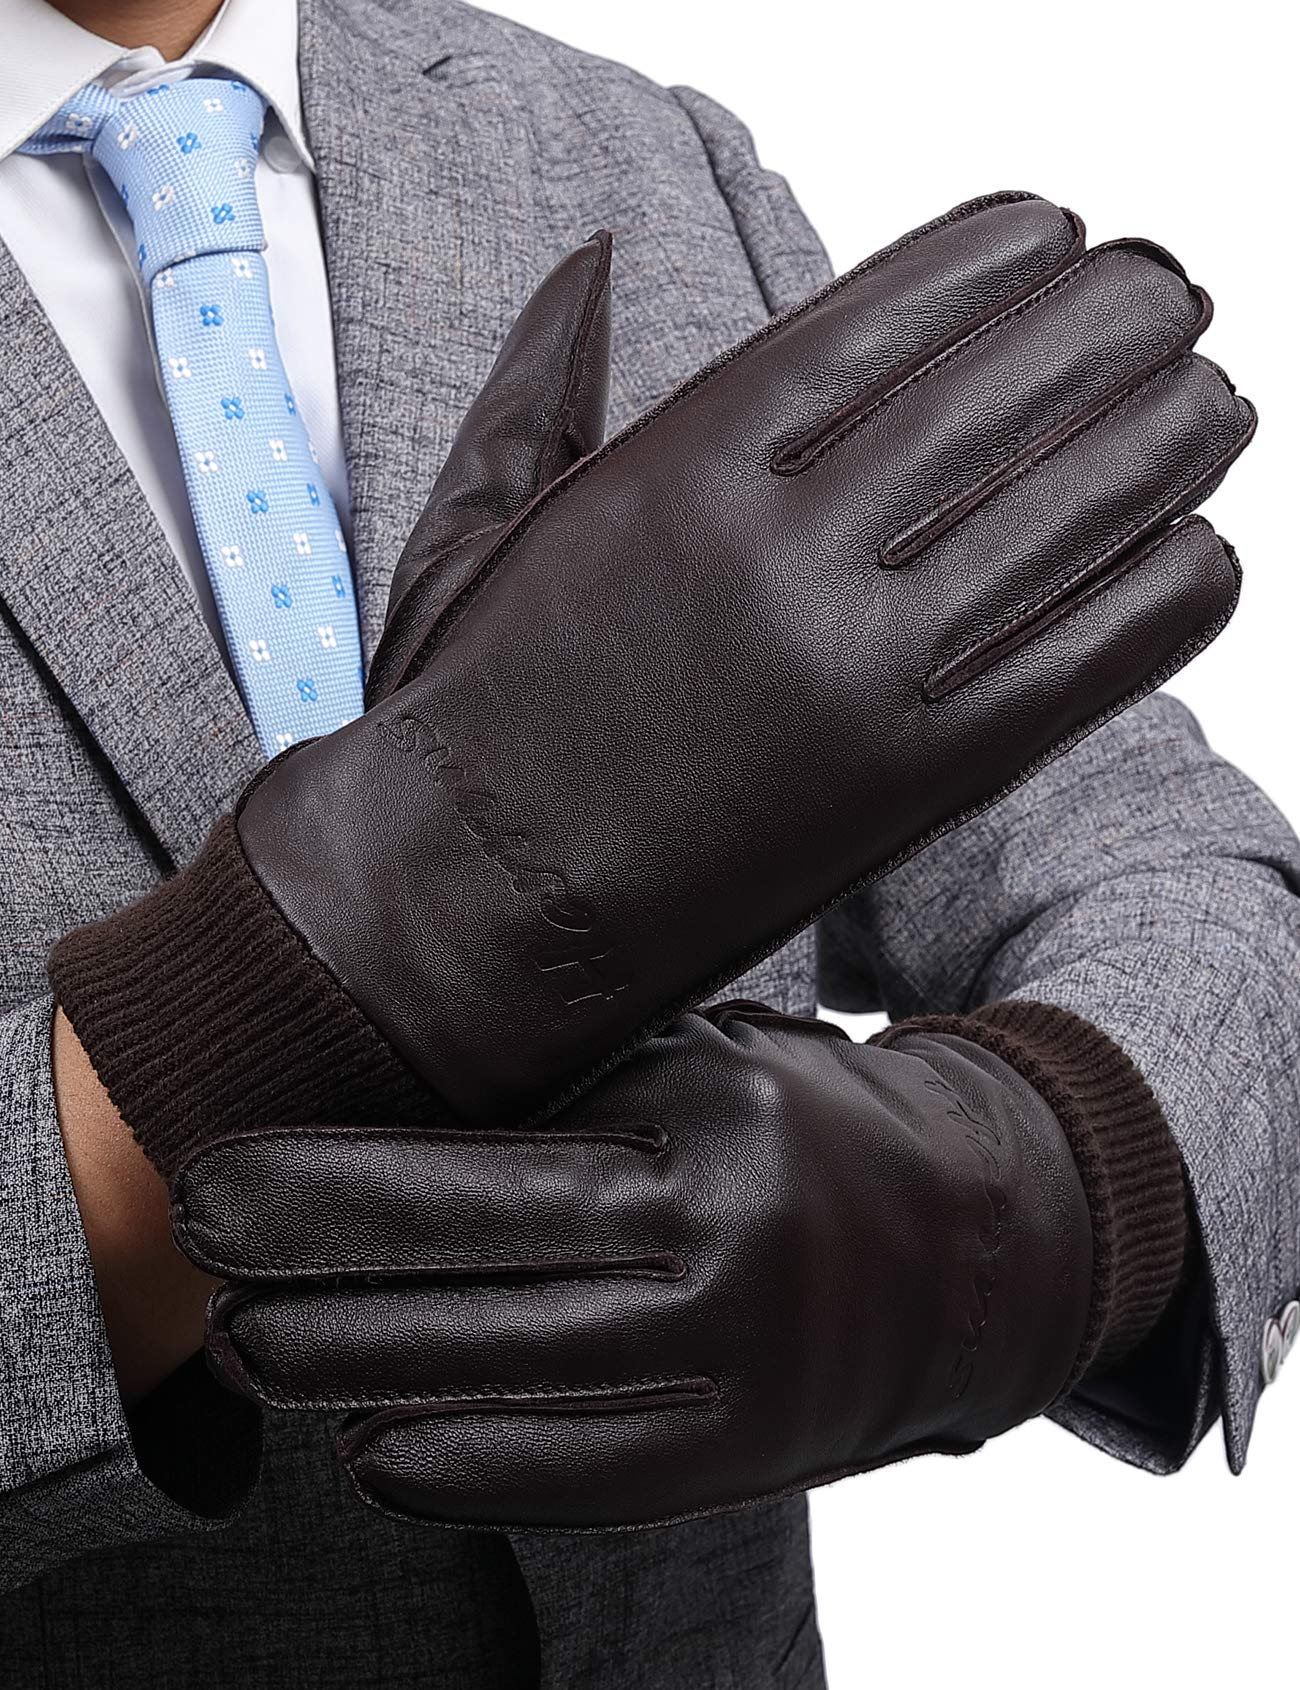 Leather Gloves for Men, with 3M Thinsulate Full-Hand Touchscreen Driving Cold Weather Gloves